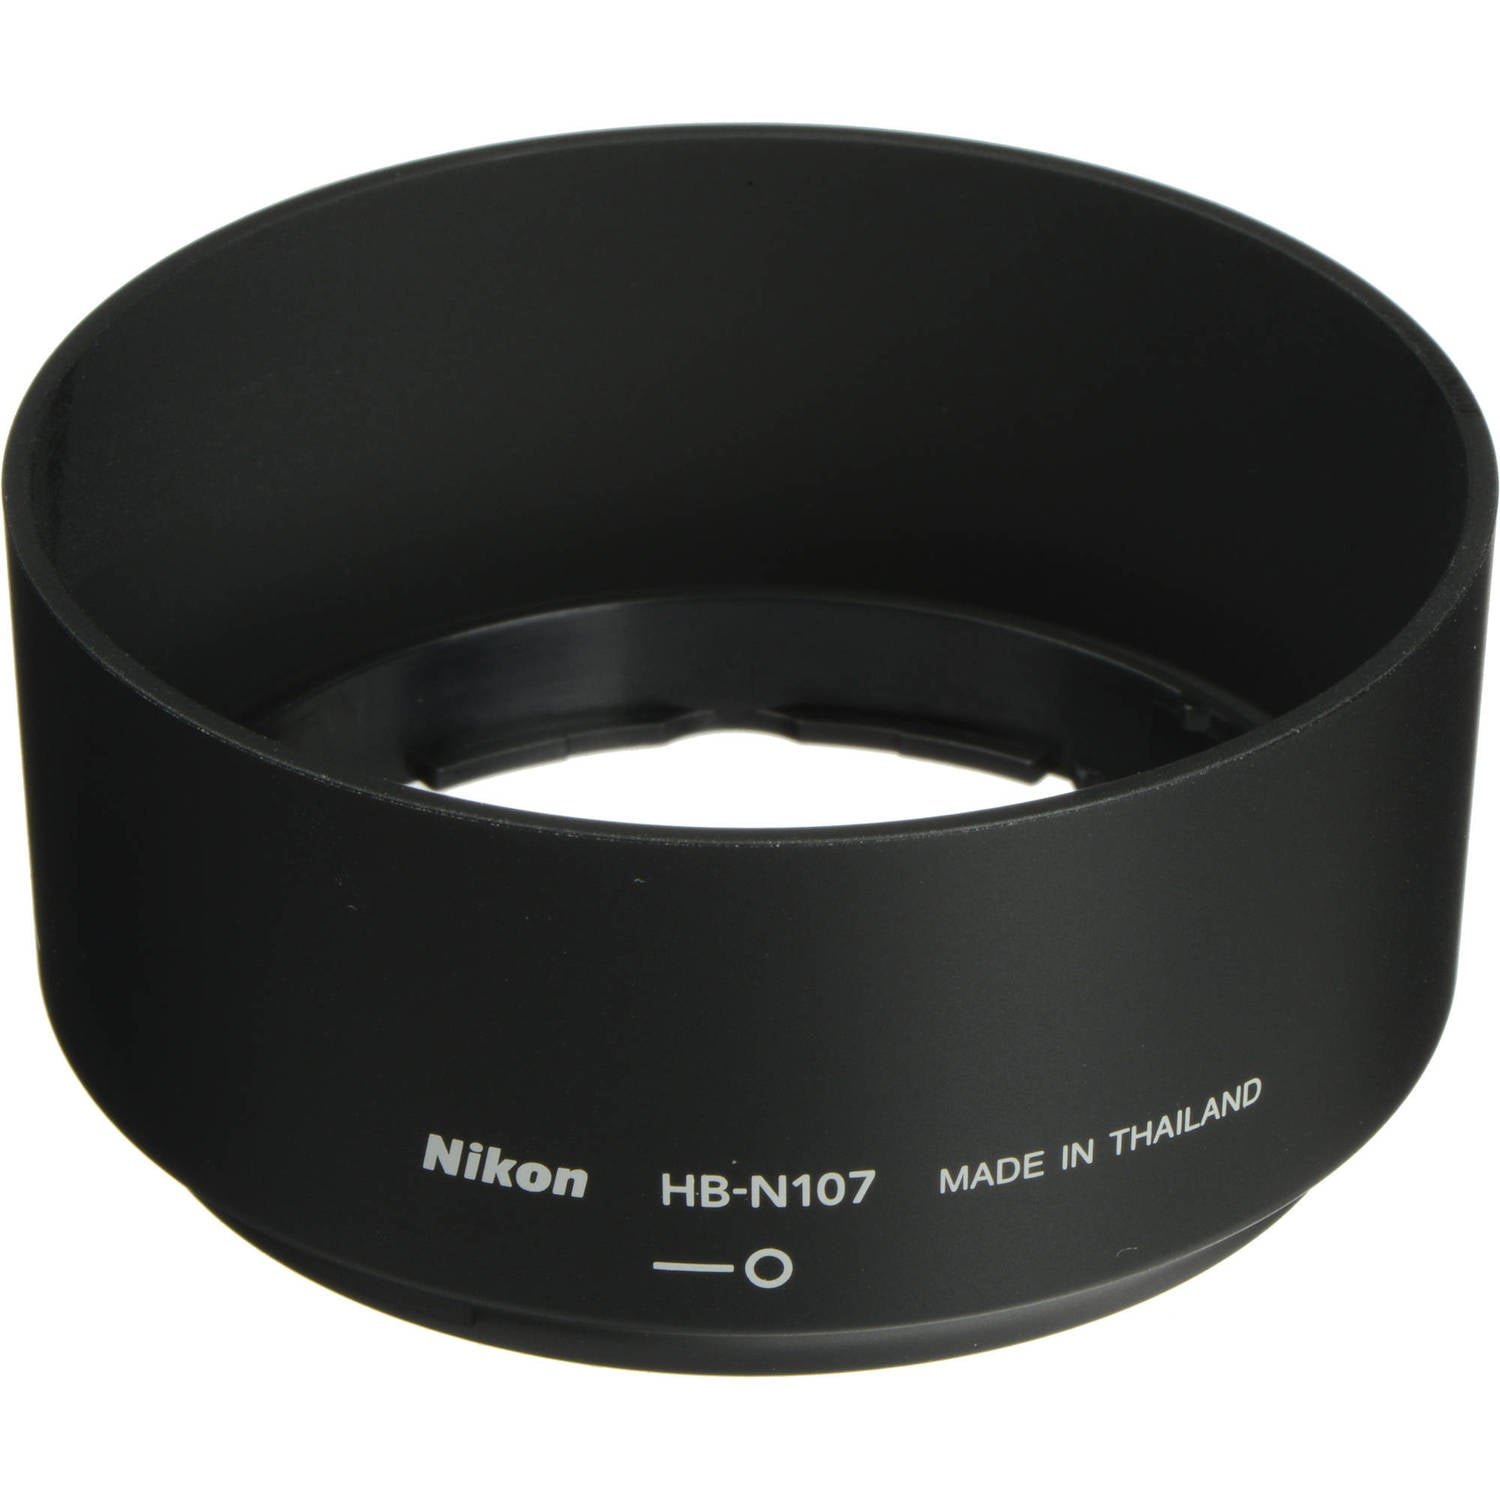 Nikon HB-N107 Lens Hood for 32mm f/1.2 1 NIKKOR Lens (Black)